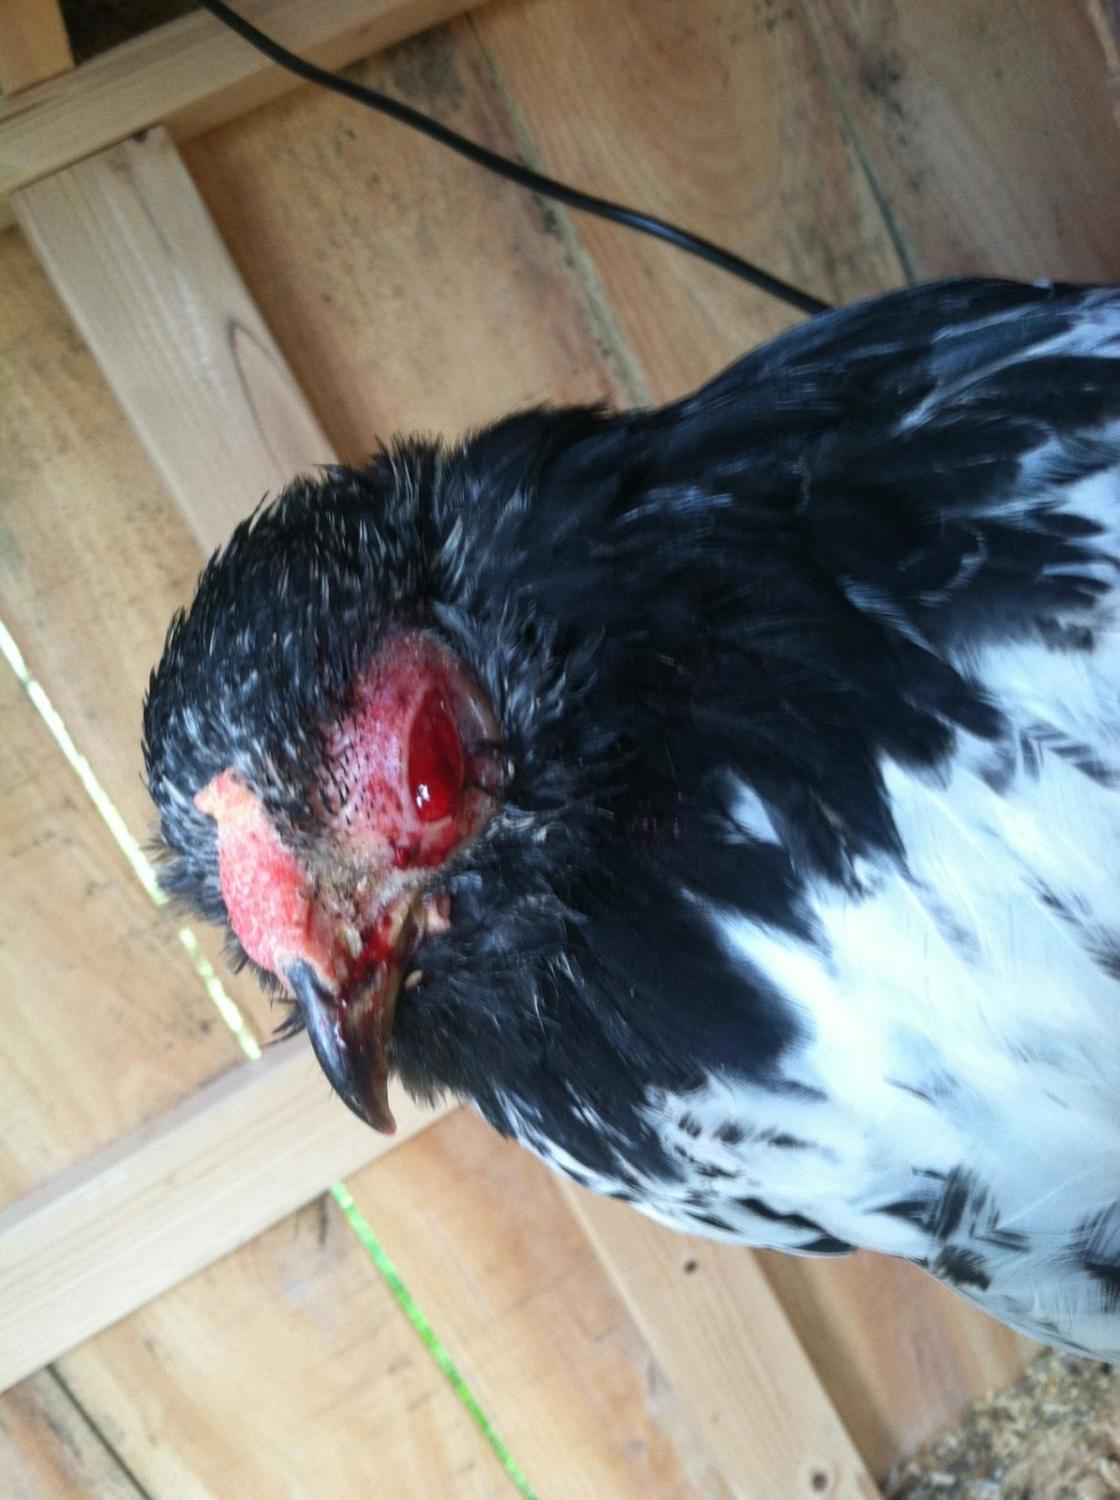 wantbantams's photos in Chicken with his eye pecked out?